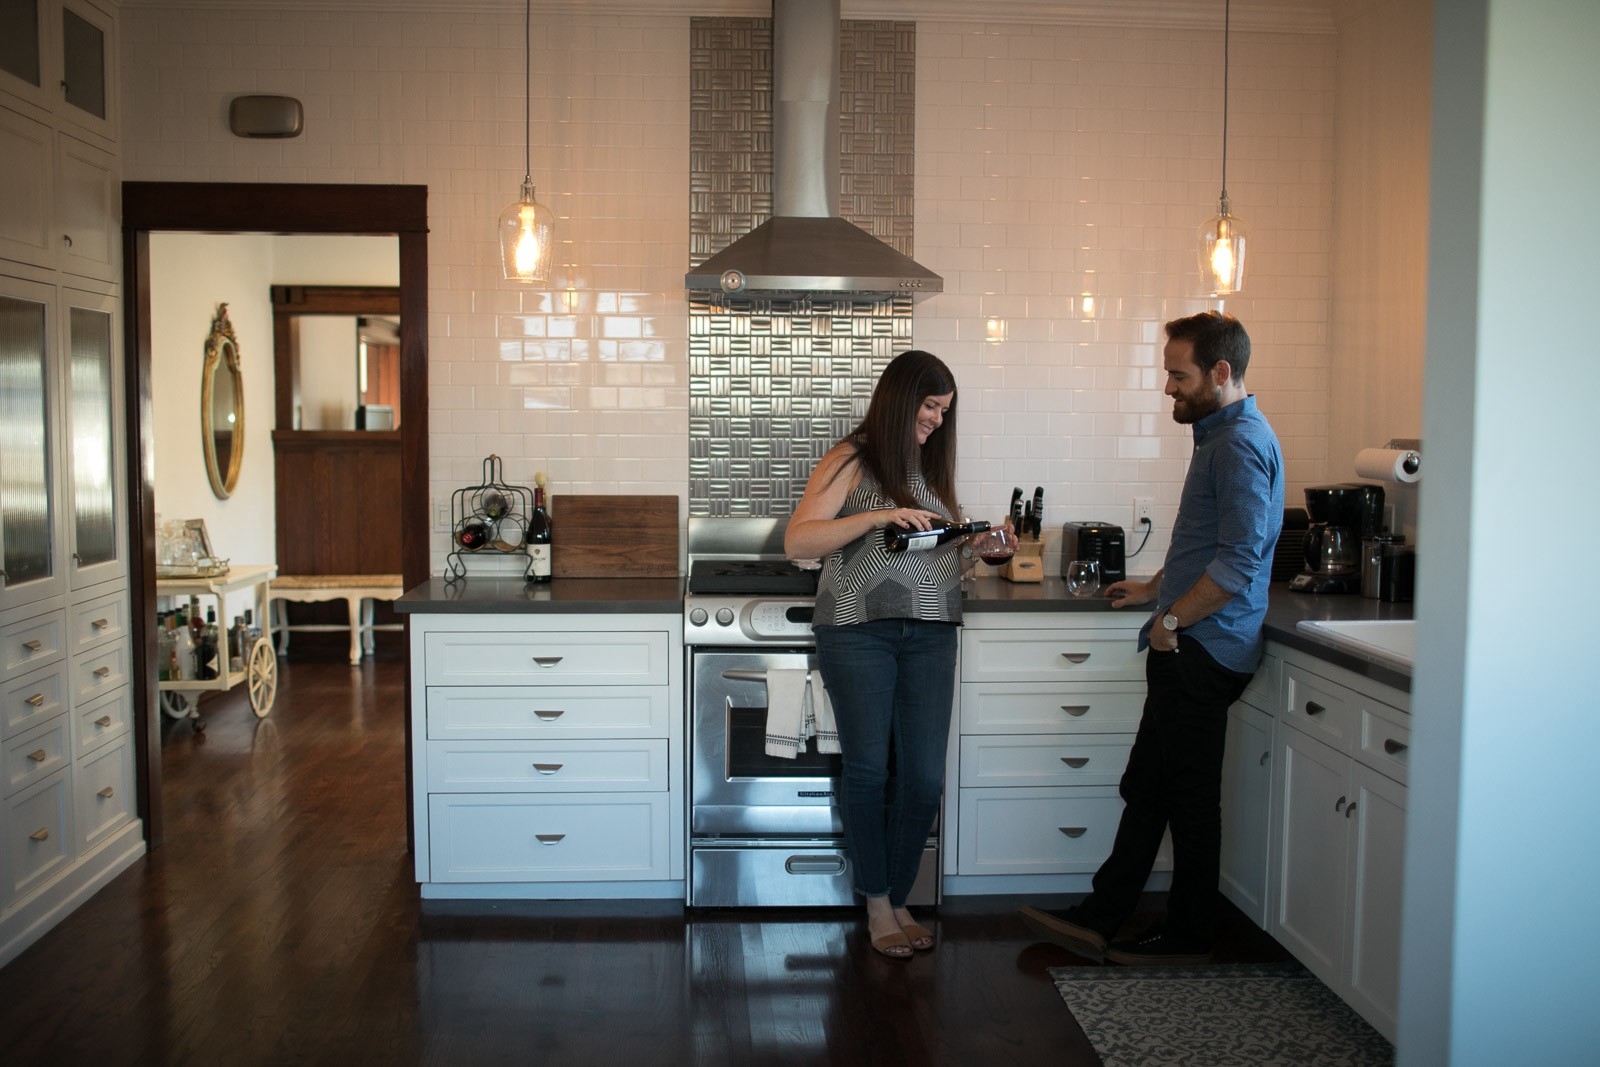 At Home in South Los Angeles – Comp Quarterly – Medium Craftsman Home Kitchen Designs For Adrian on modern colonial kitchen design, houzz kitchen design, colonial home kitchen design, craftsman home interior design, coffered ceiling kitchen design, craftsman home exterior design, craftsman home design ideas,